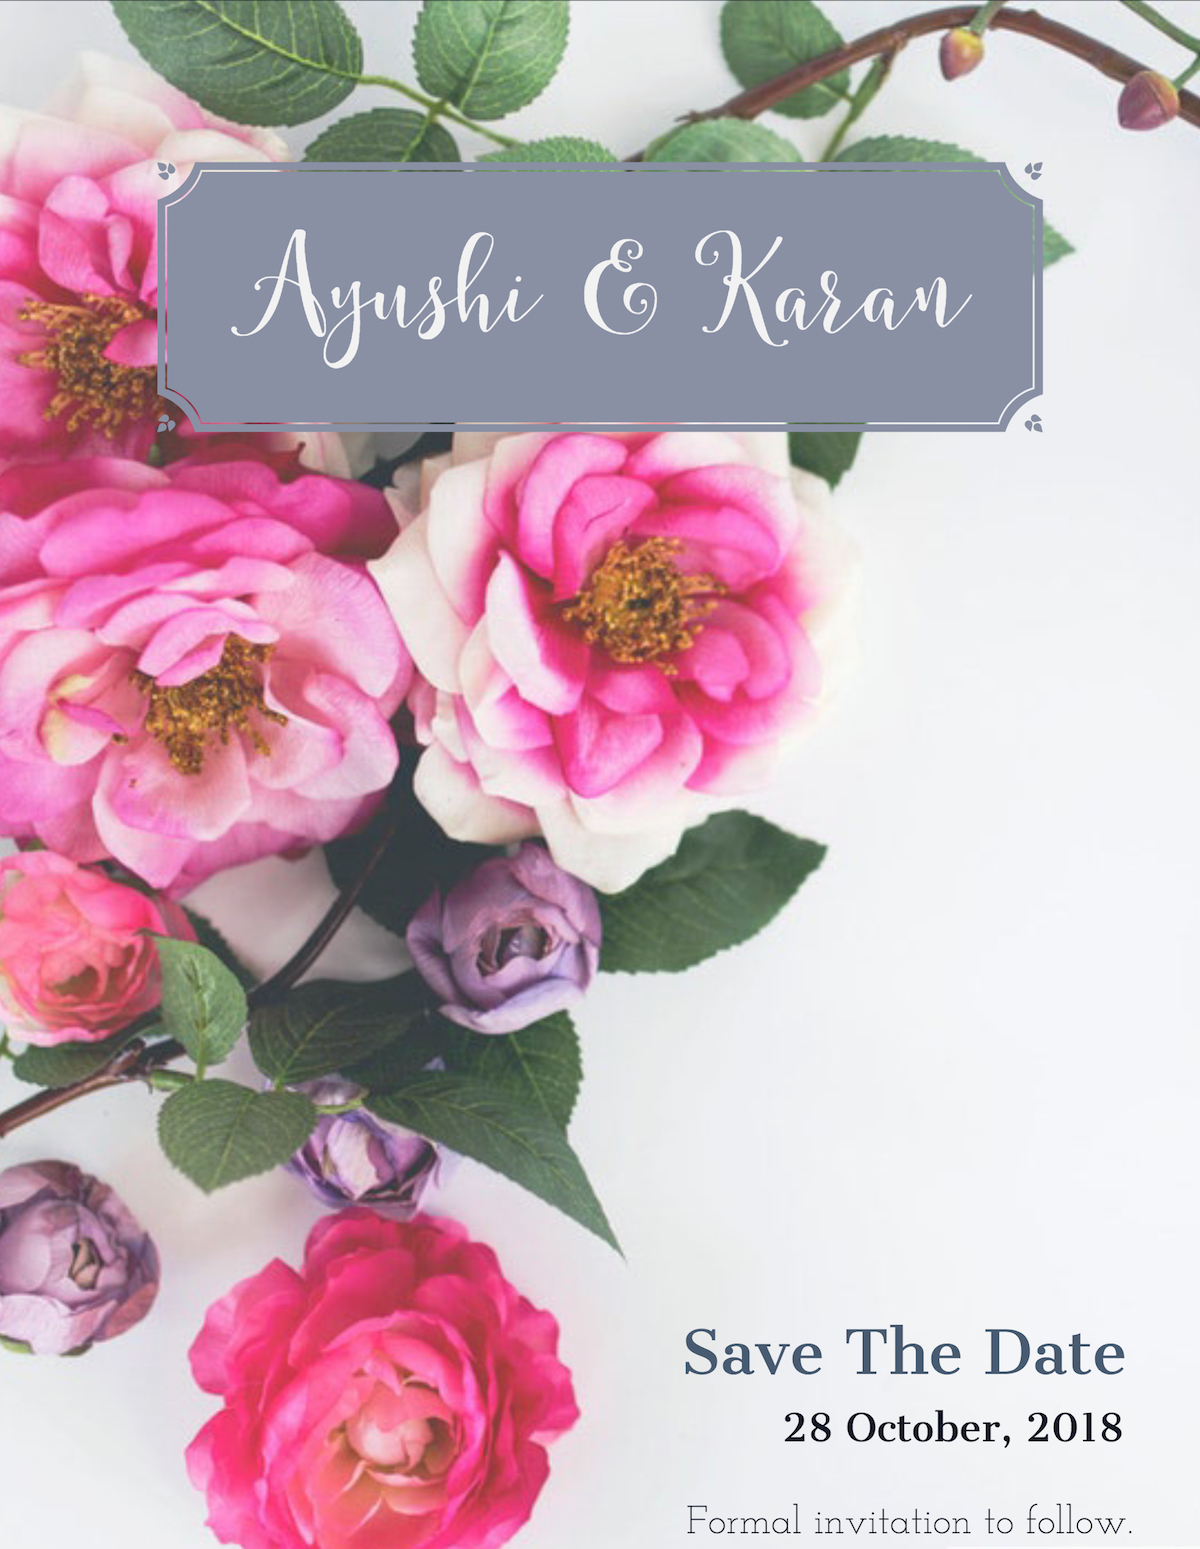 Free download of indian wedding save the date invites - on Spark Post